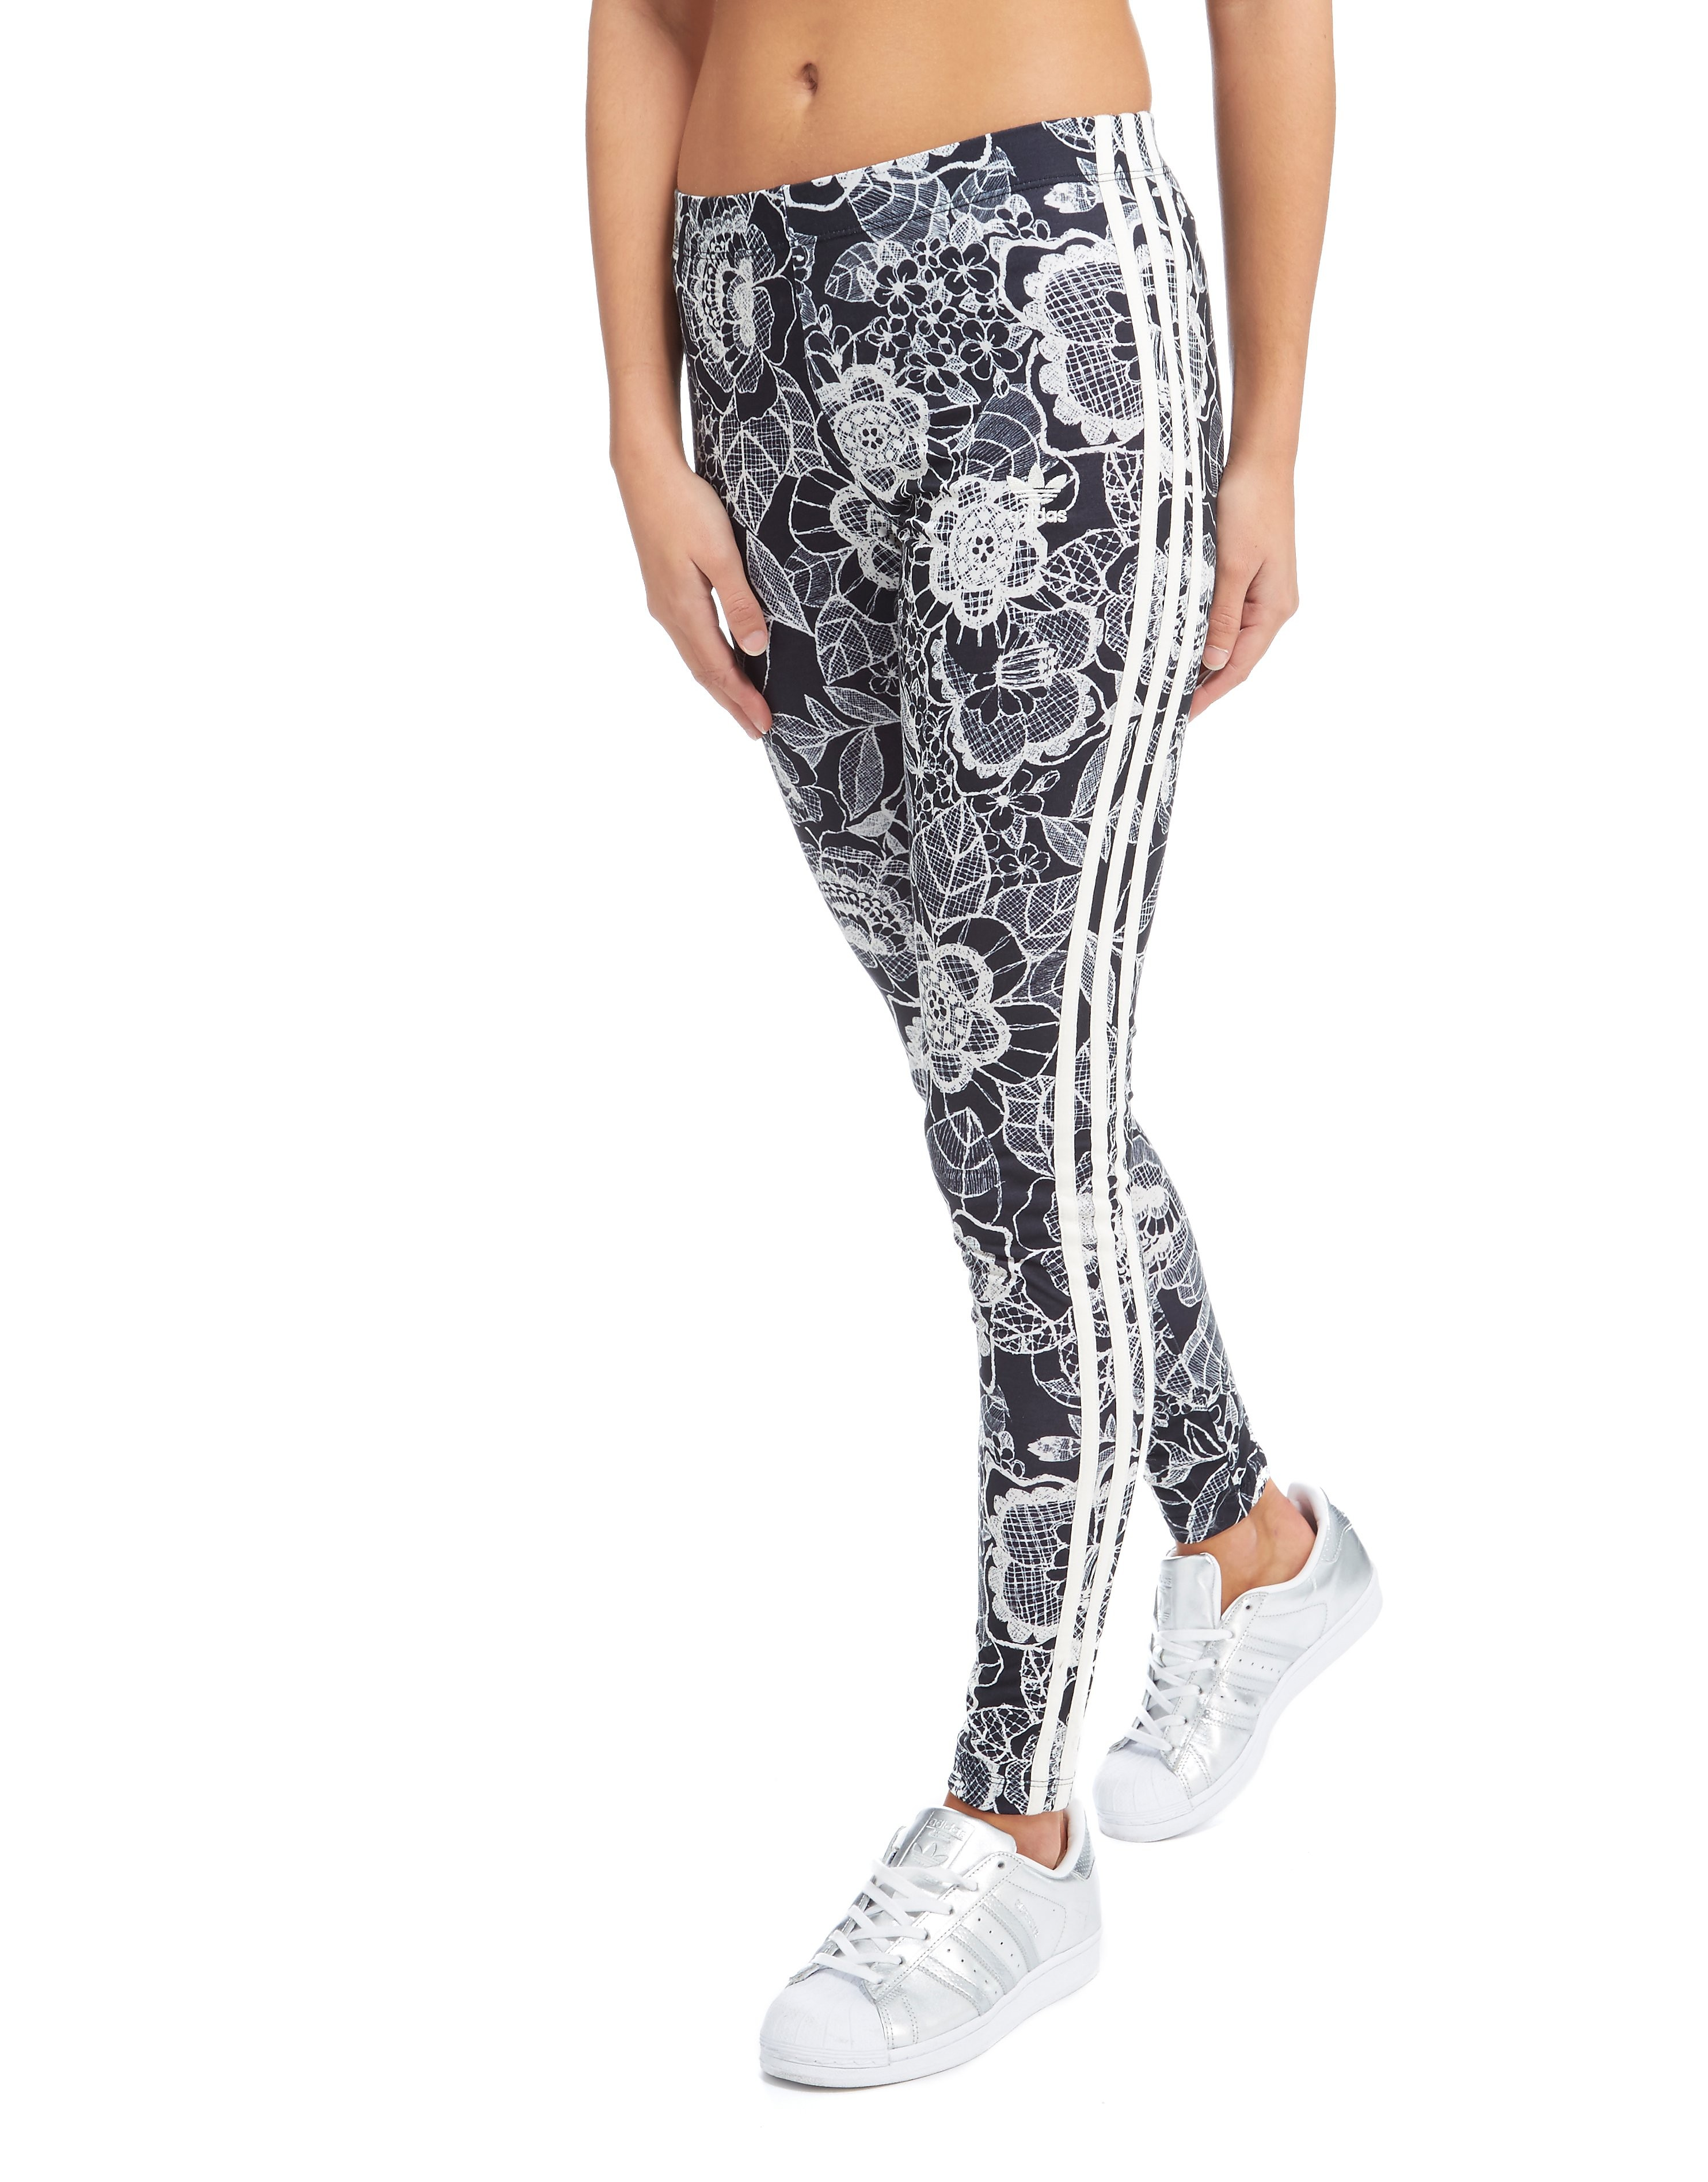 adidas Originals FARM Florido 3-Stripes Leggings